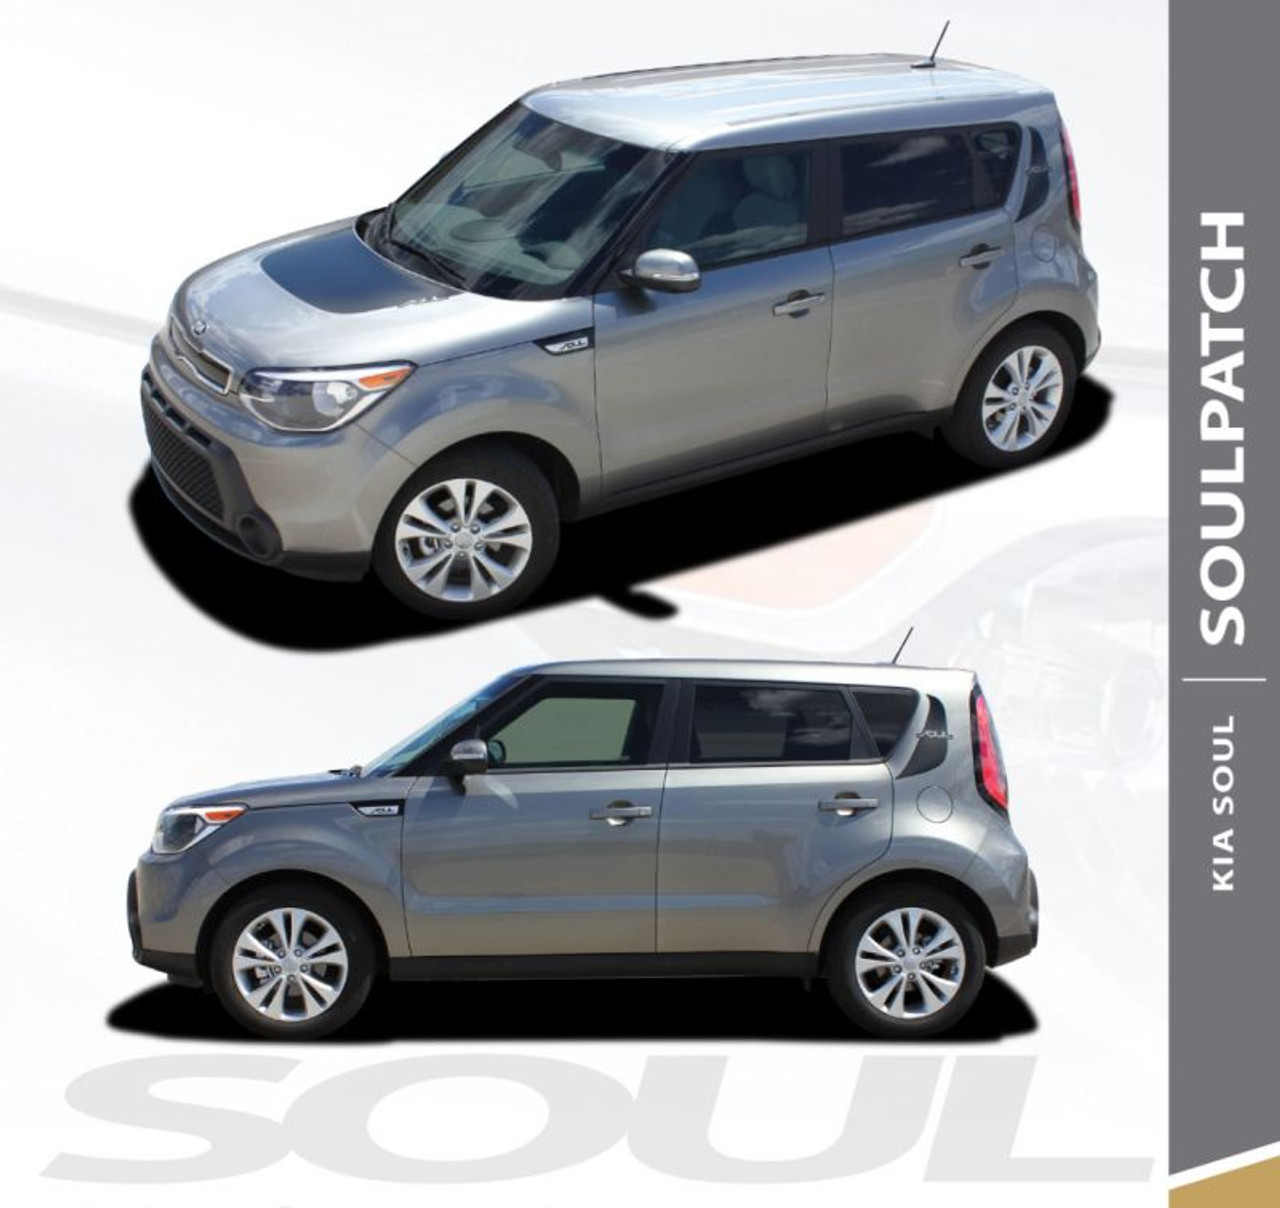 For KIA SOUL Side Accent Stripes Decals 2012 2013 2014 2015 2016 2017 2018 2019